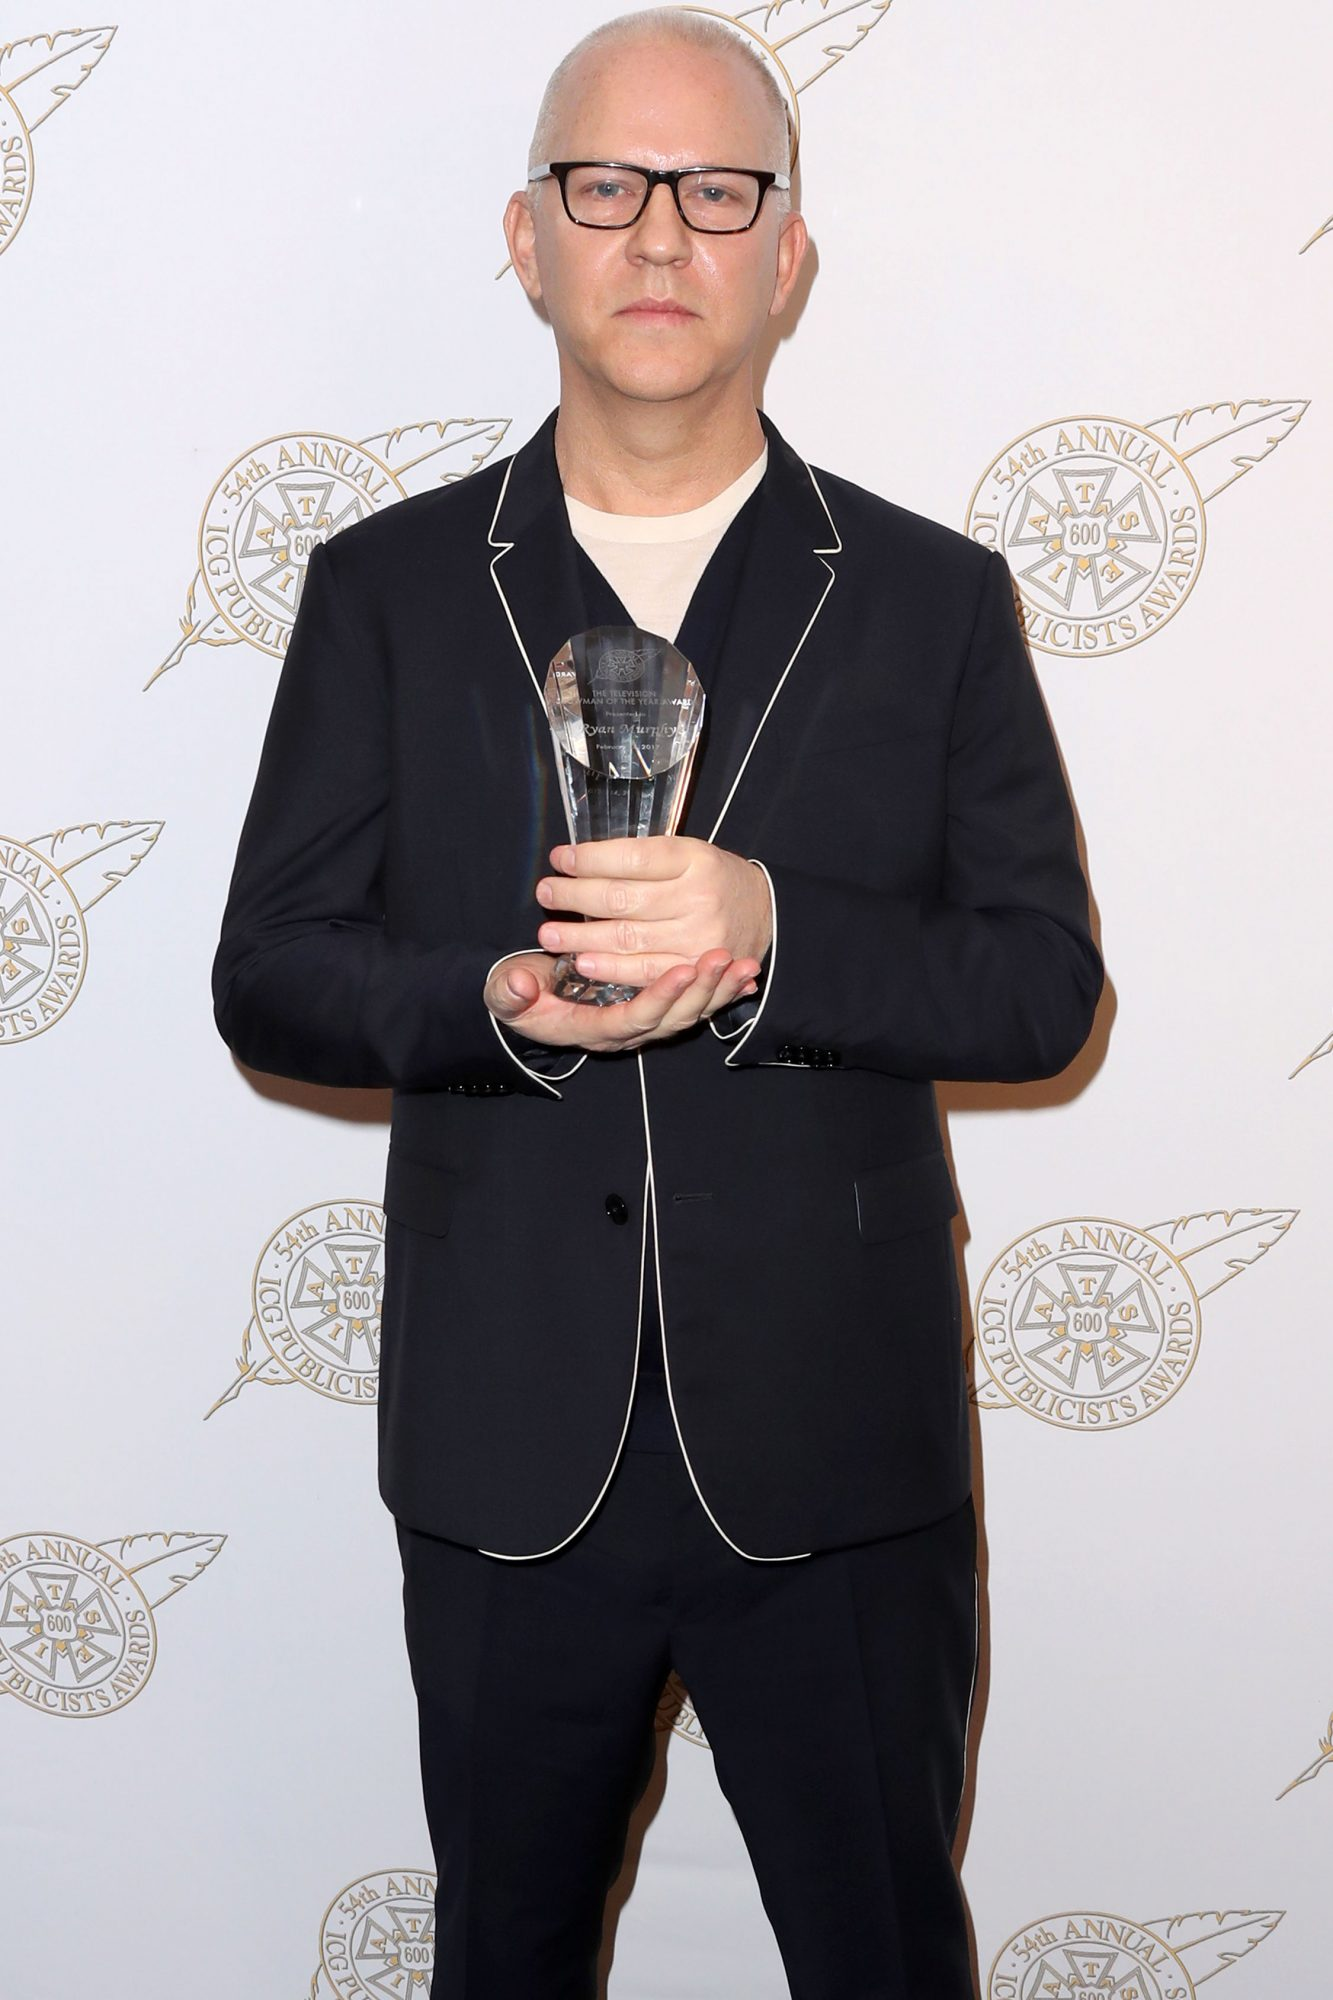 BEVERLY HILLS, CA - FEBRUARY 24: Screenwriter Ryan Murphy poses with his Television Showman of the Year award backstage at the 54th Annual International Cinematographers Guild Publicists Awards at The Beverly Hilton Hotel on February 24, 2017 in Beverly Hills, California. (Photo by Frederick M. Brown/Getty Images)